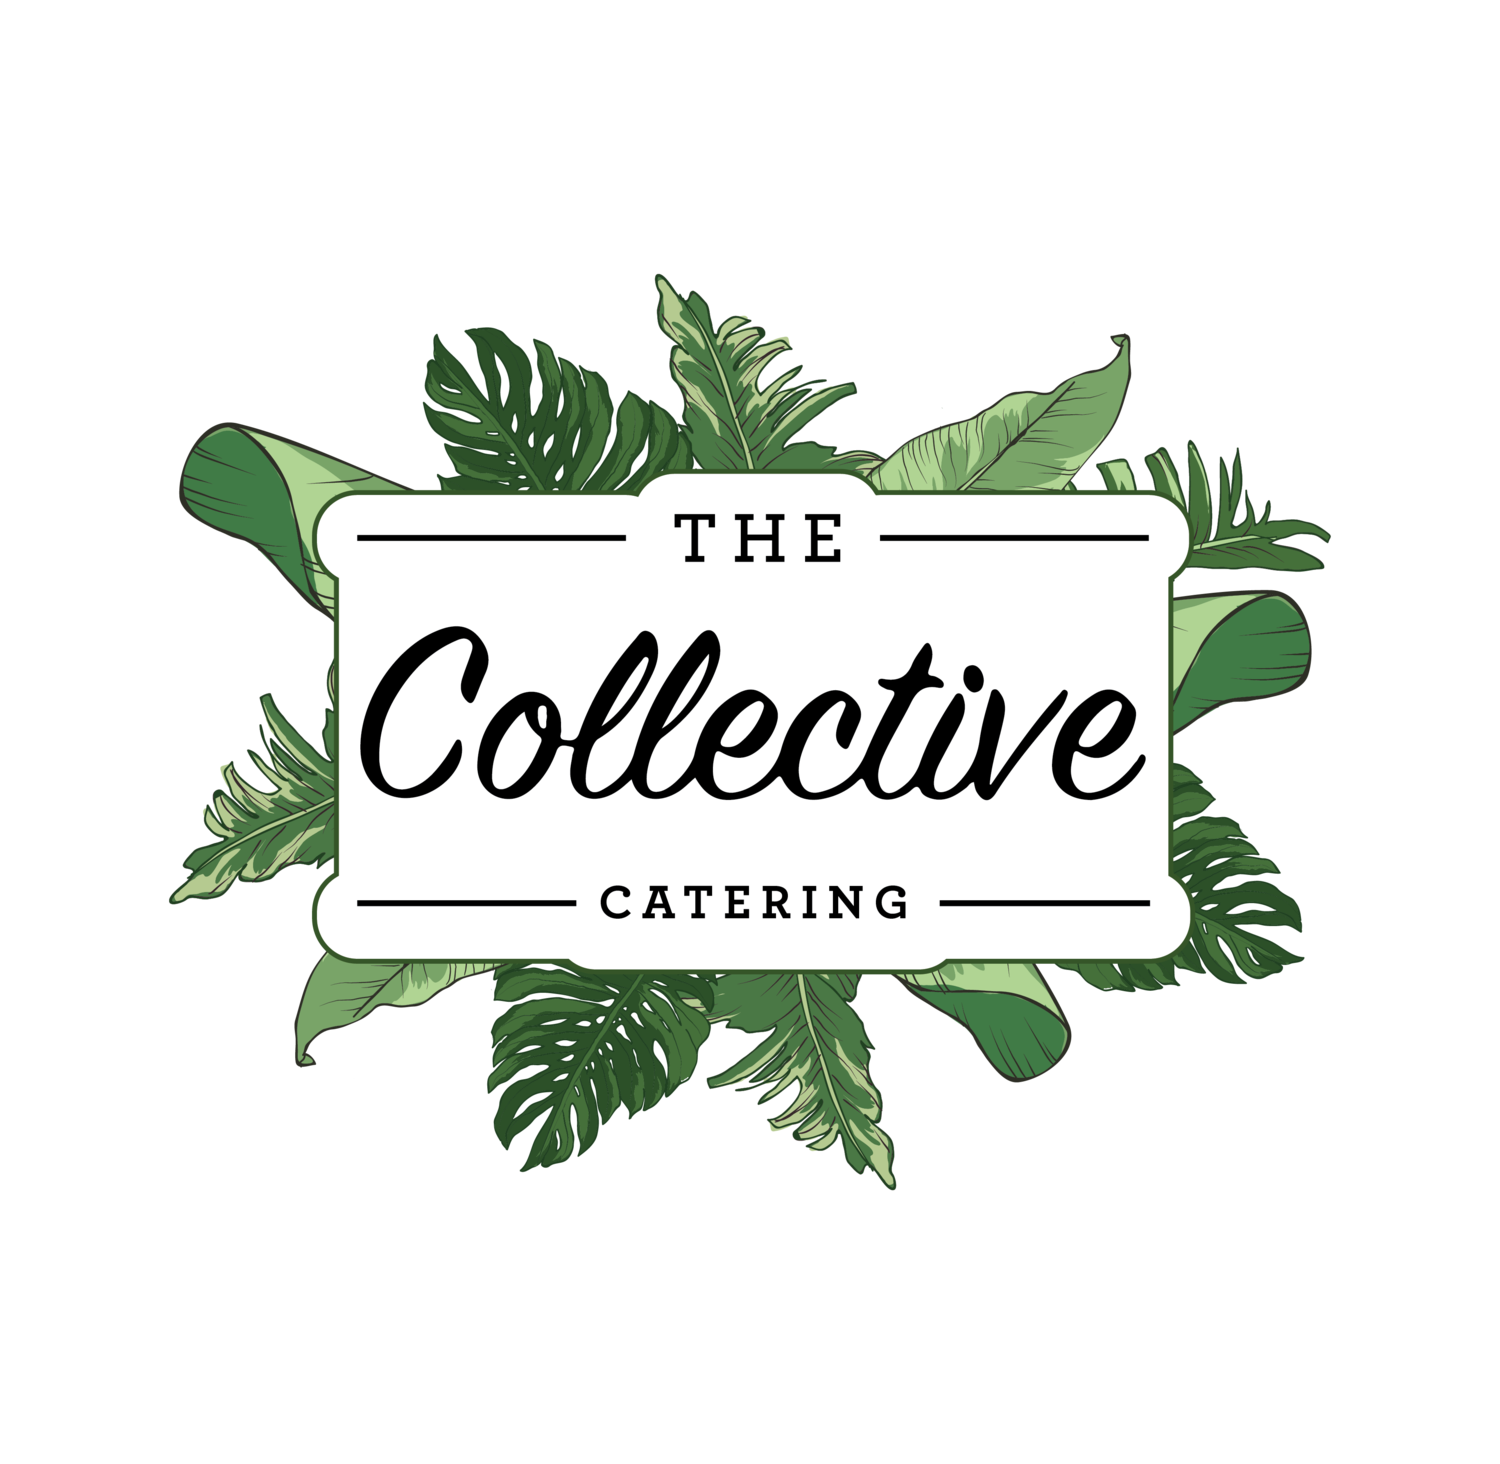 The Collective Catering